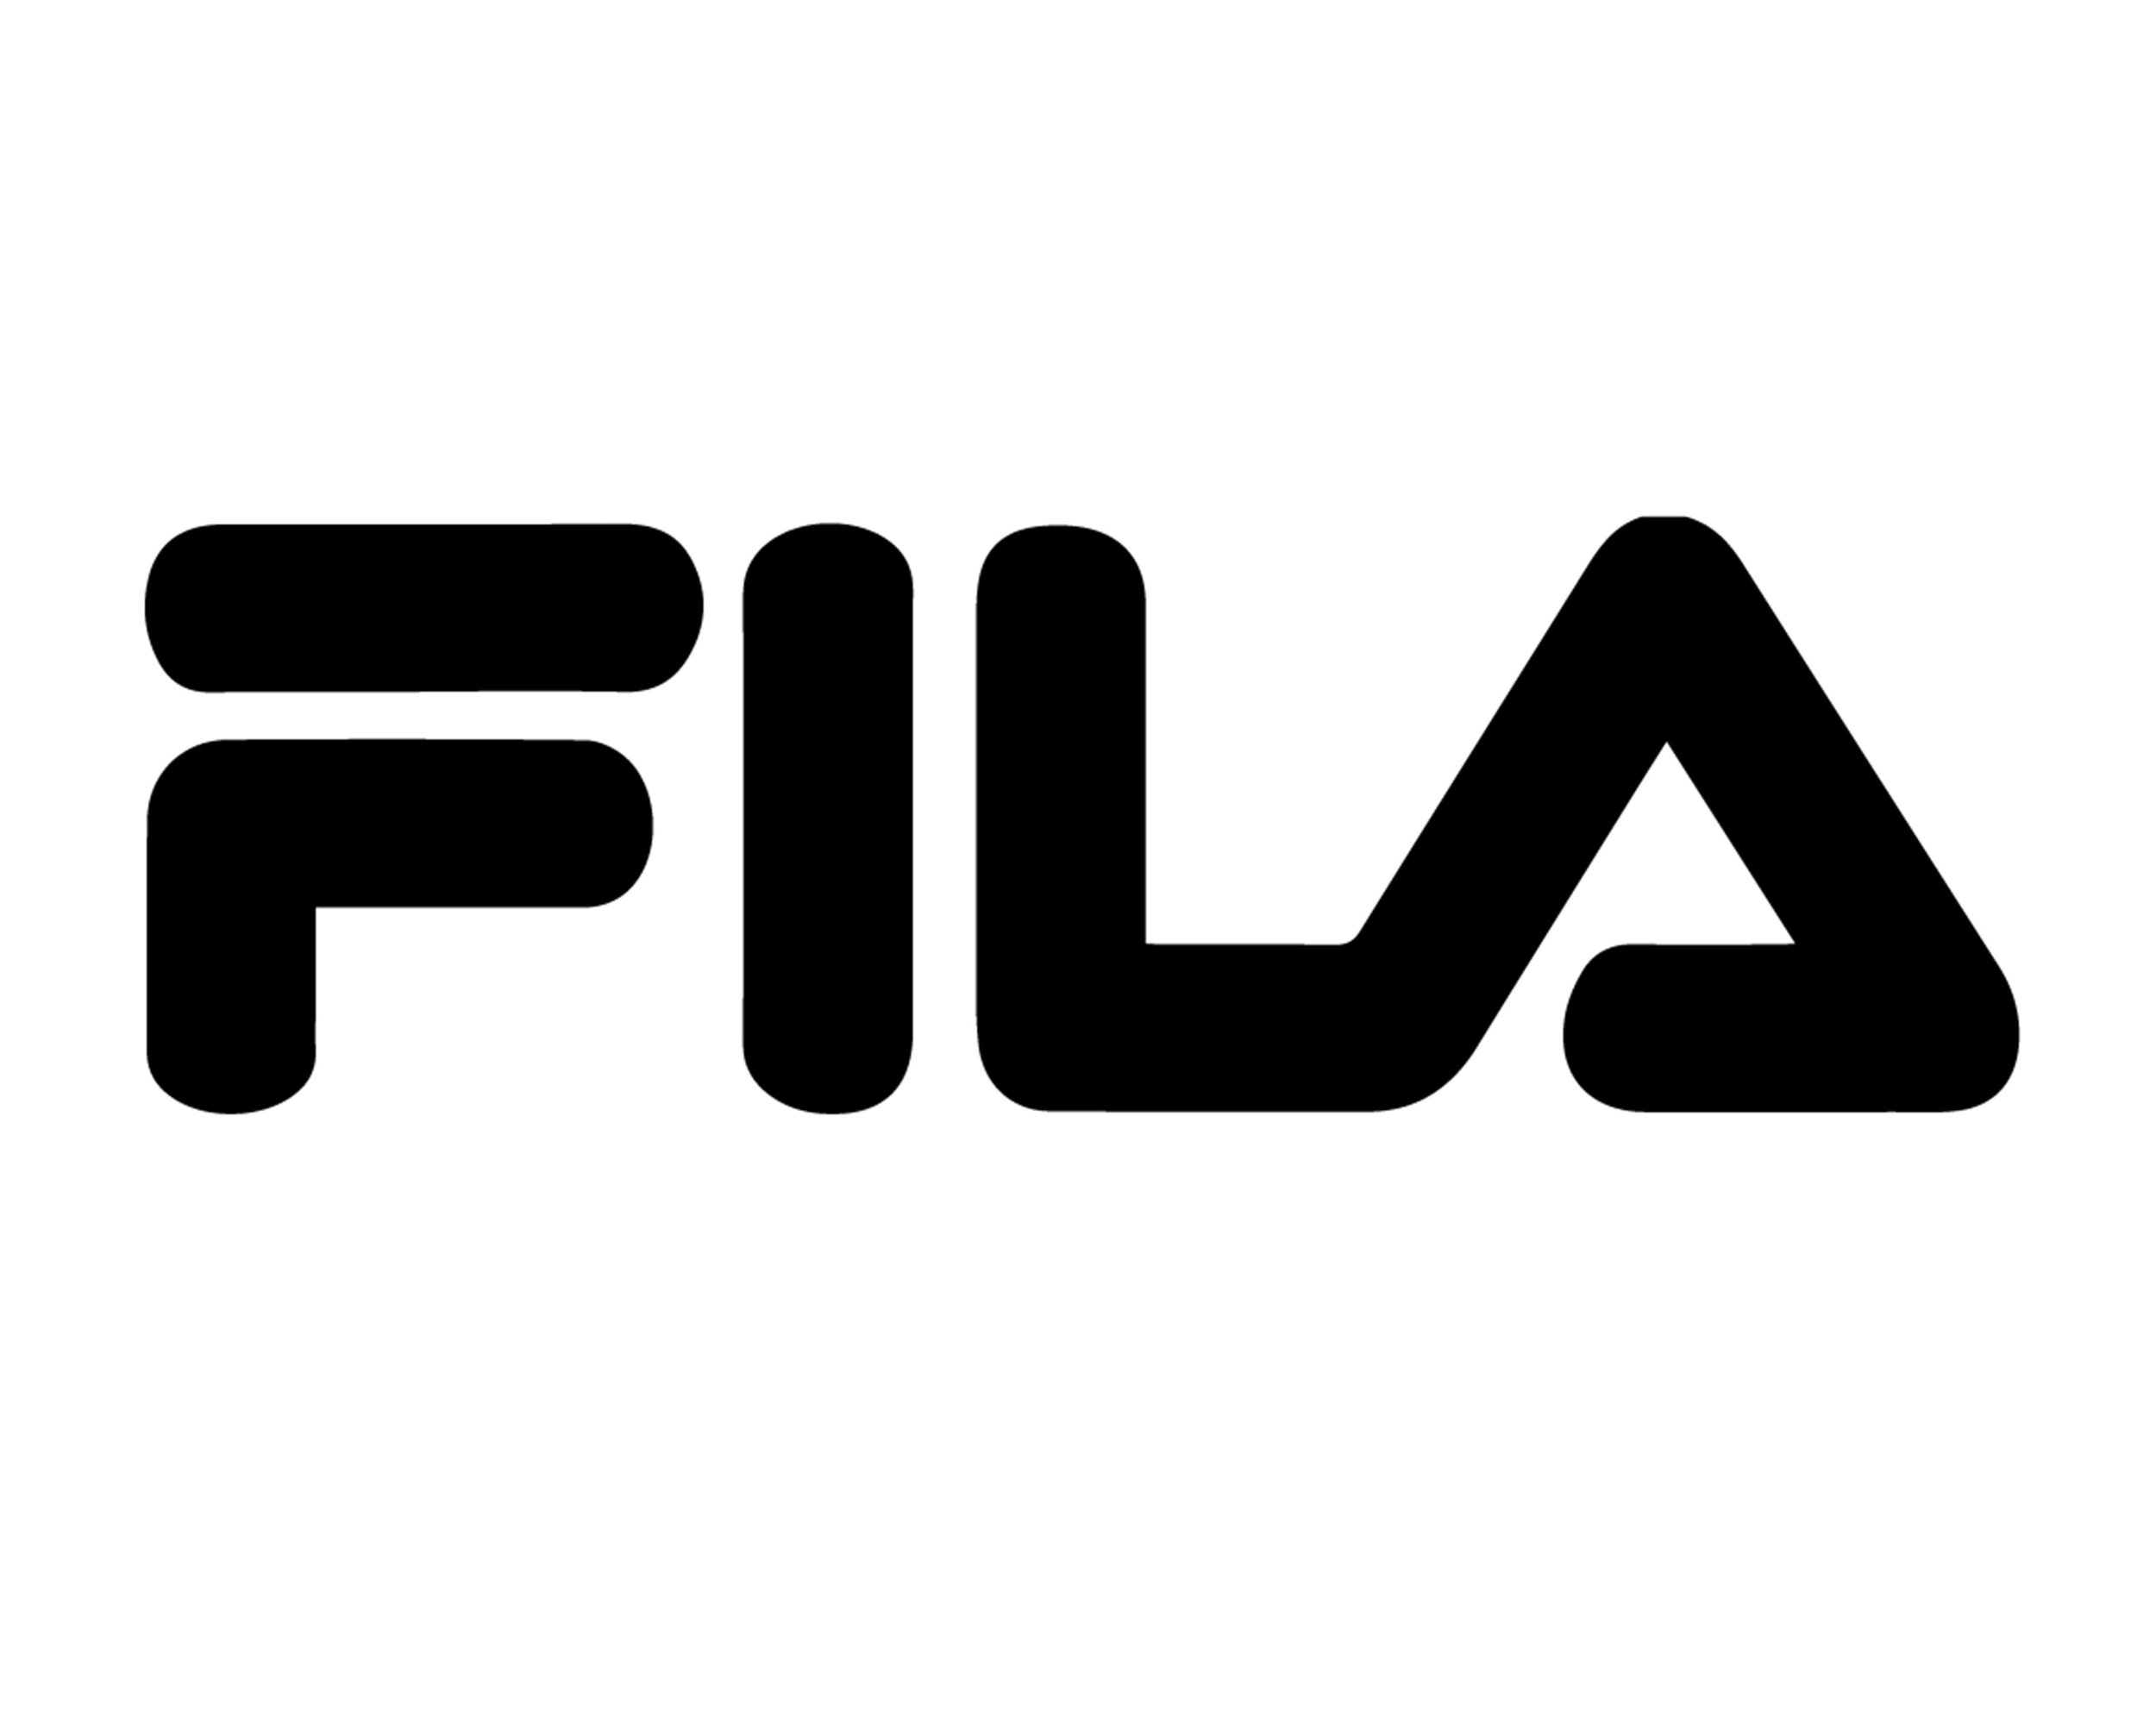 Brands - Jonathan has directed several online campaigns and social media spots for FILA's heritage collection.